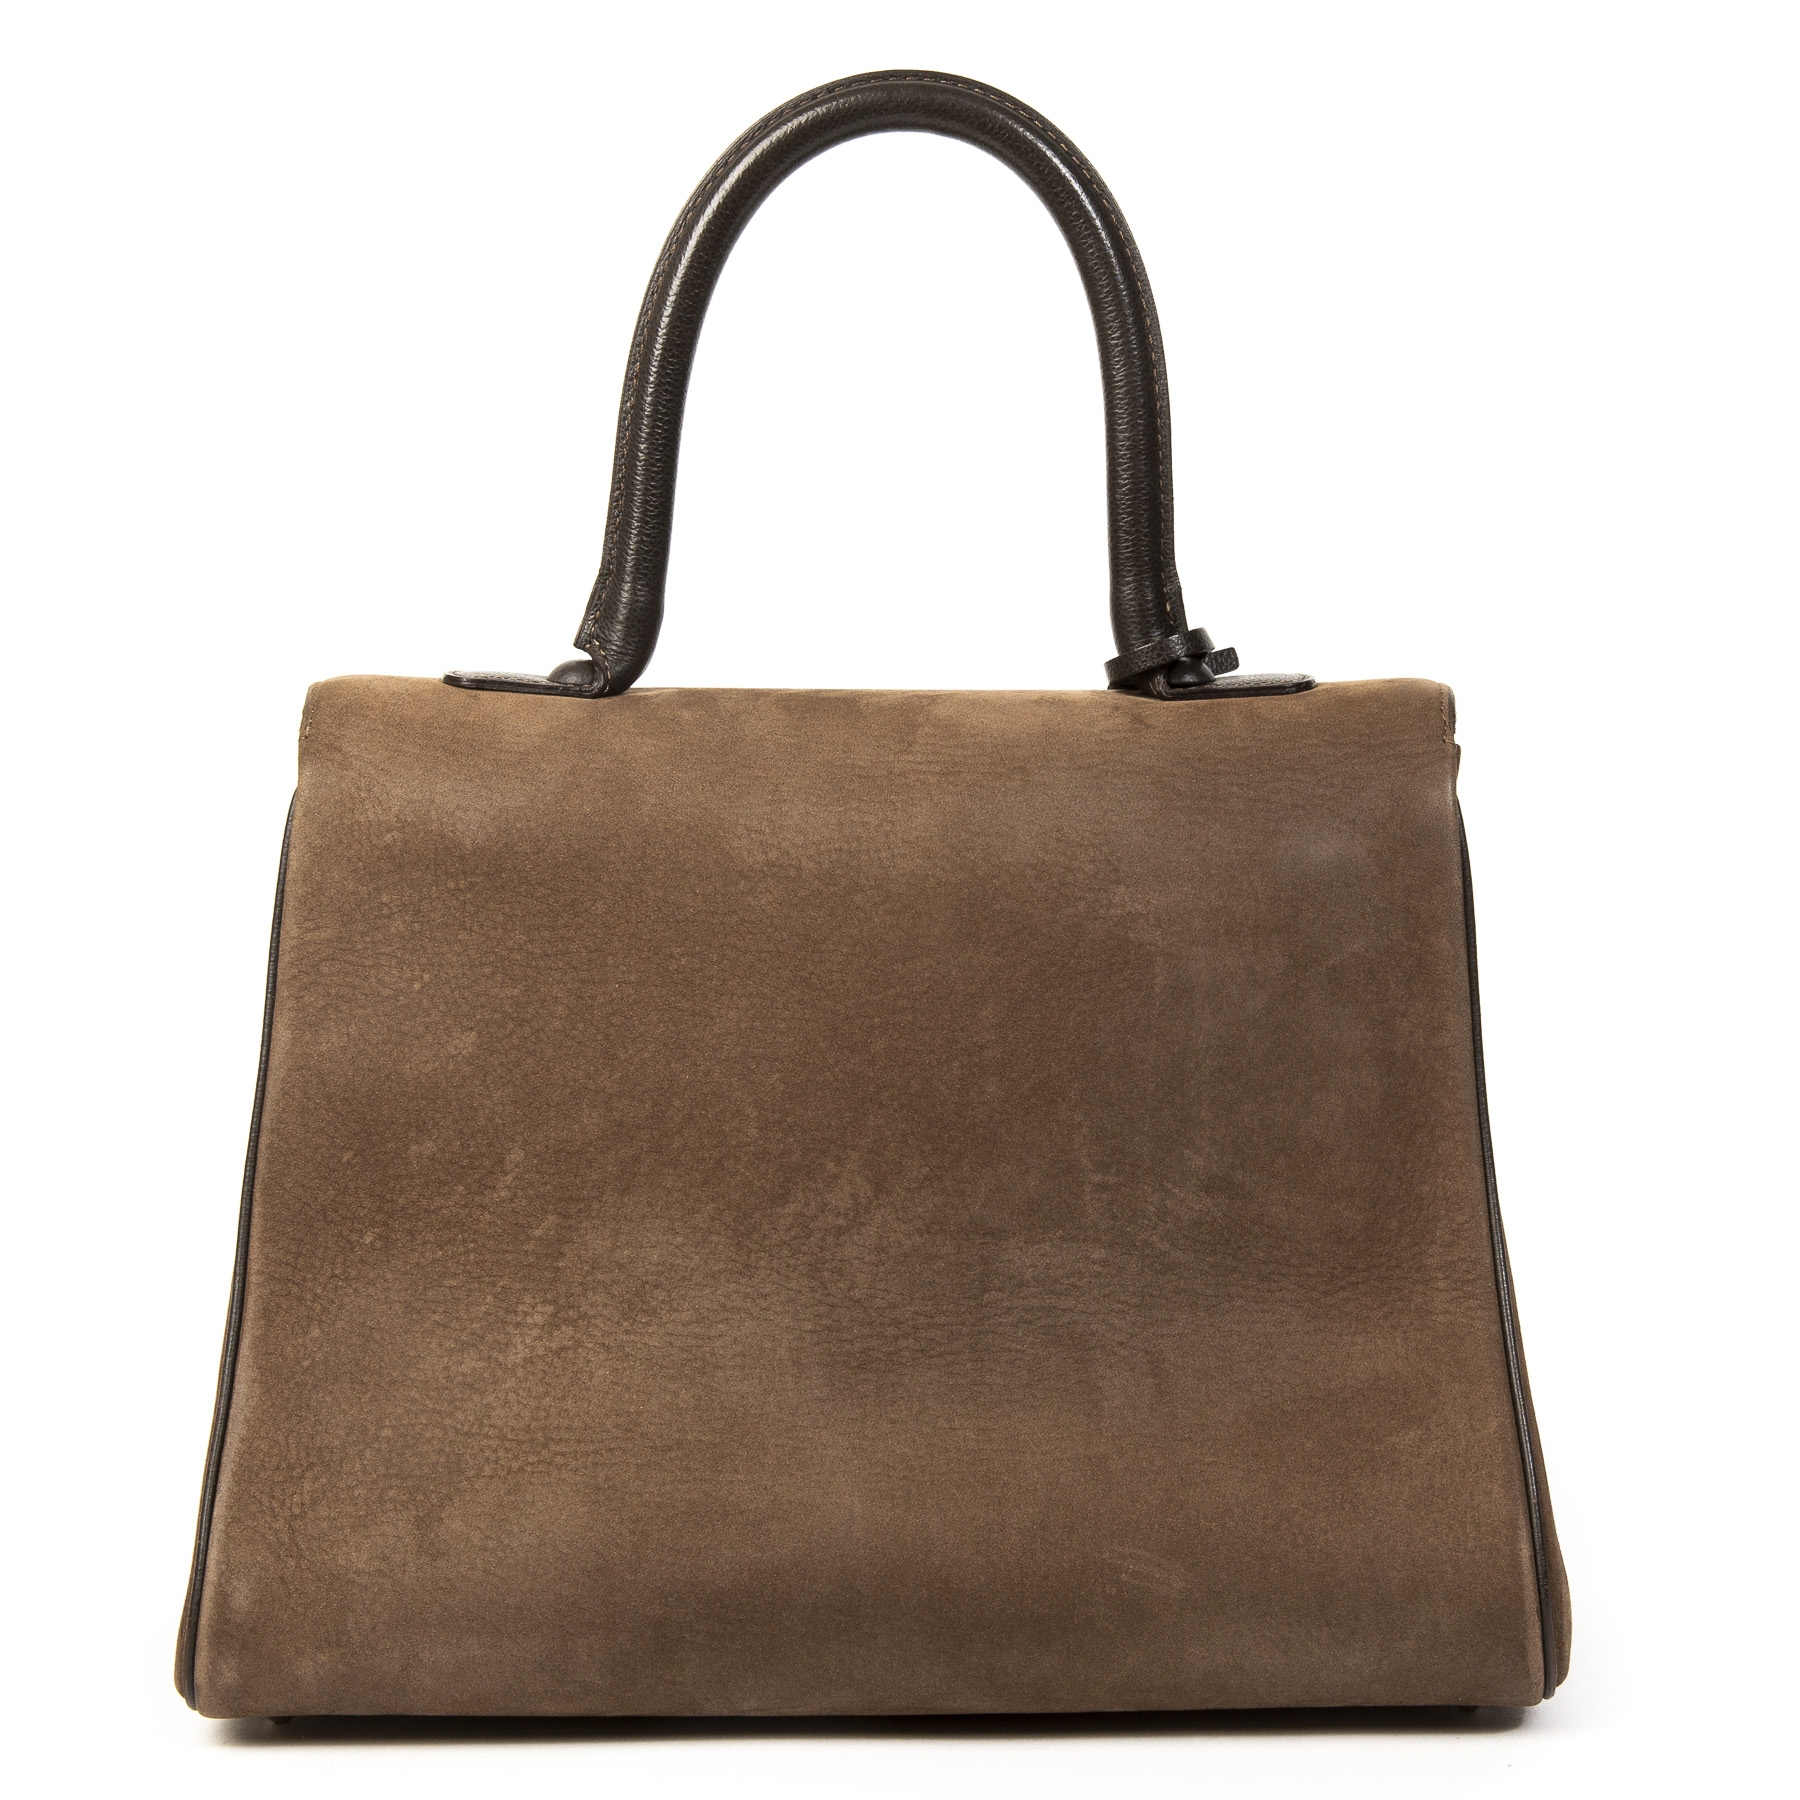 Buy this authentic second-hand vintageDelvaux Brillant MM Dark Brown Nubuck GHW at online webshop LabelLOV. Safe and secure shopping. Koop deze authentieke tweedehands vintage Delvaux Brillant MM Dark Brown Nubuck GHW  bij online webshop LabelLOV.